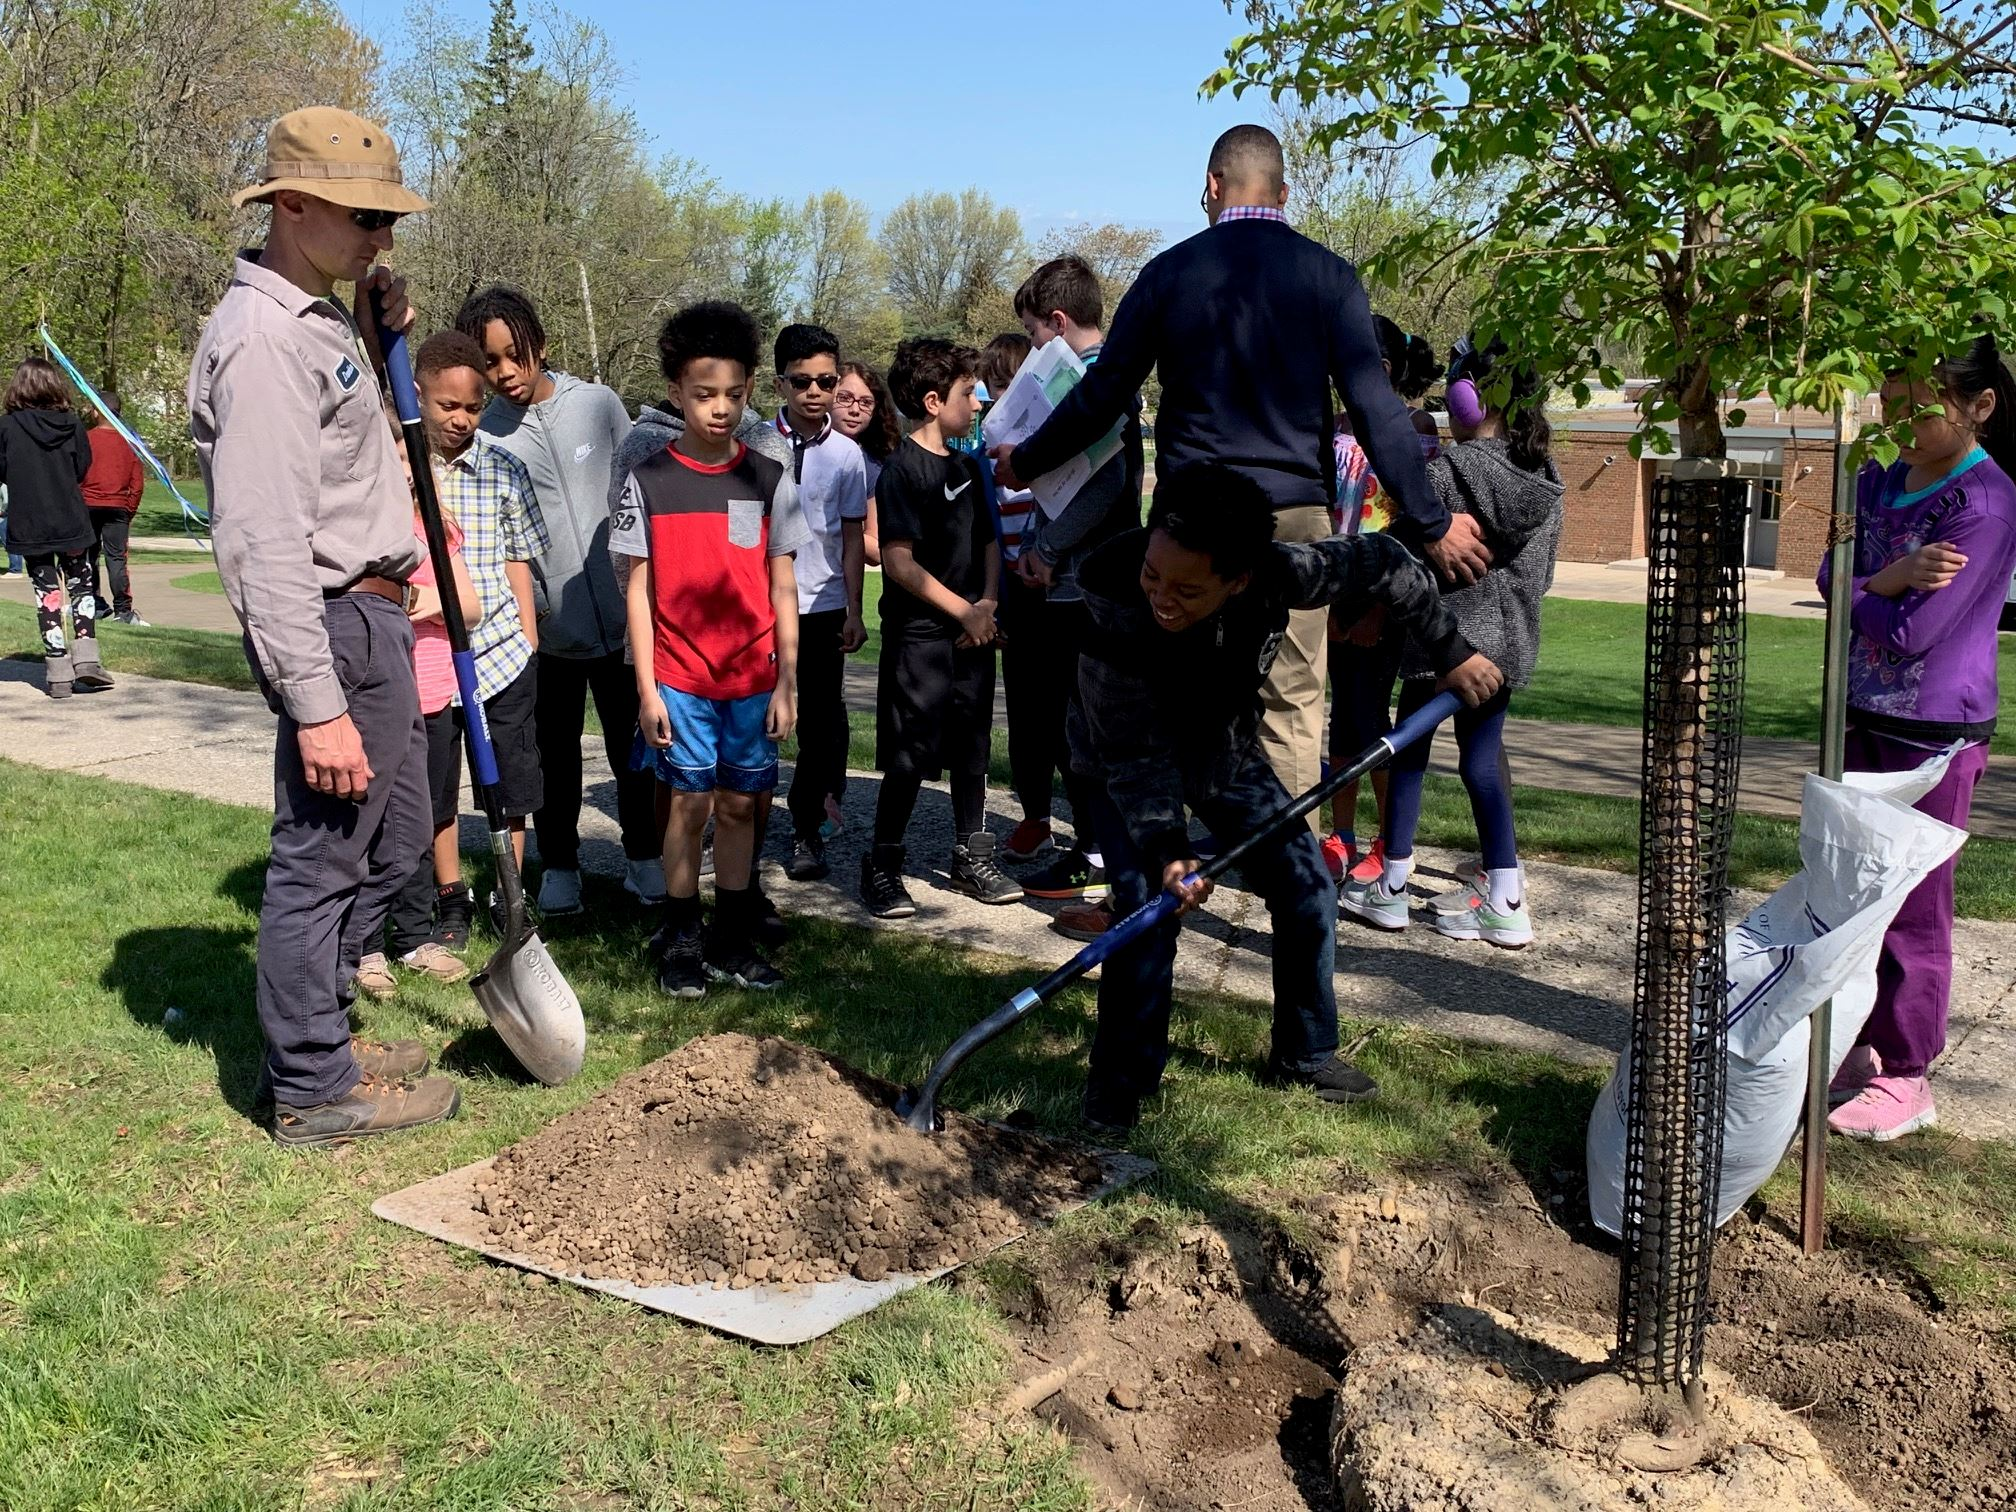 Students from Hilltop School plant a tree with assistance from the Beachwood Public Works Department